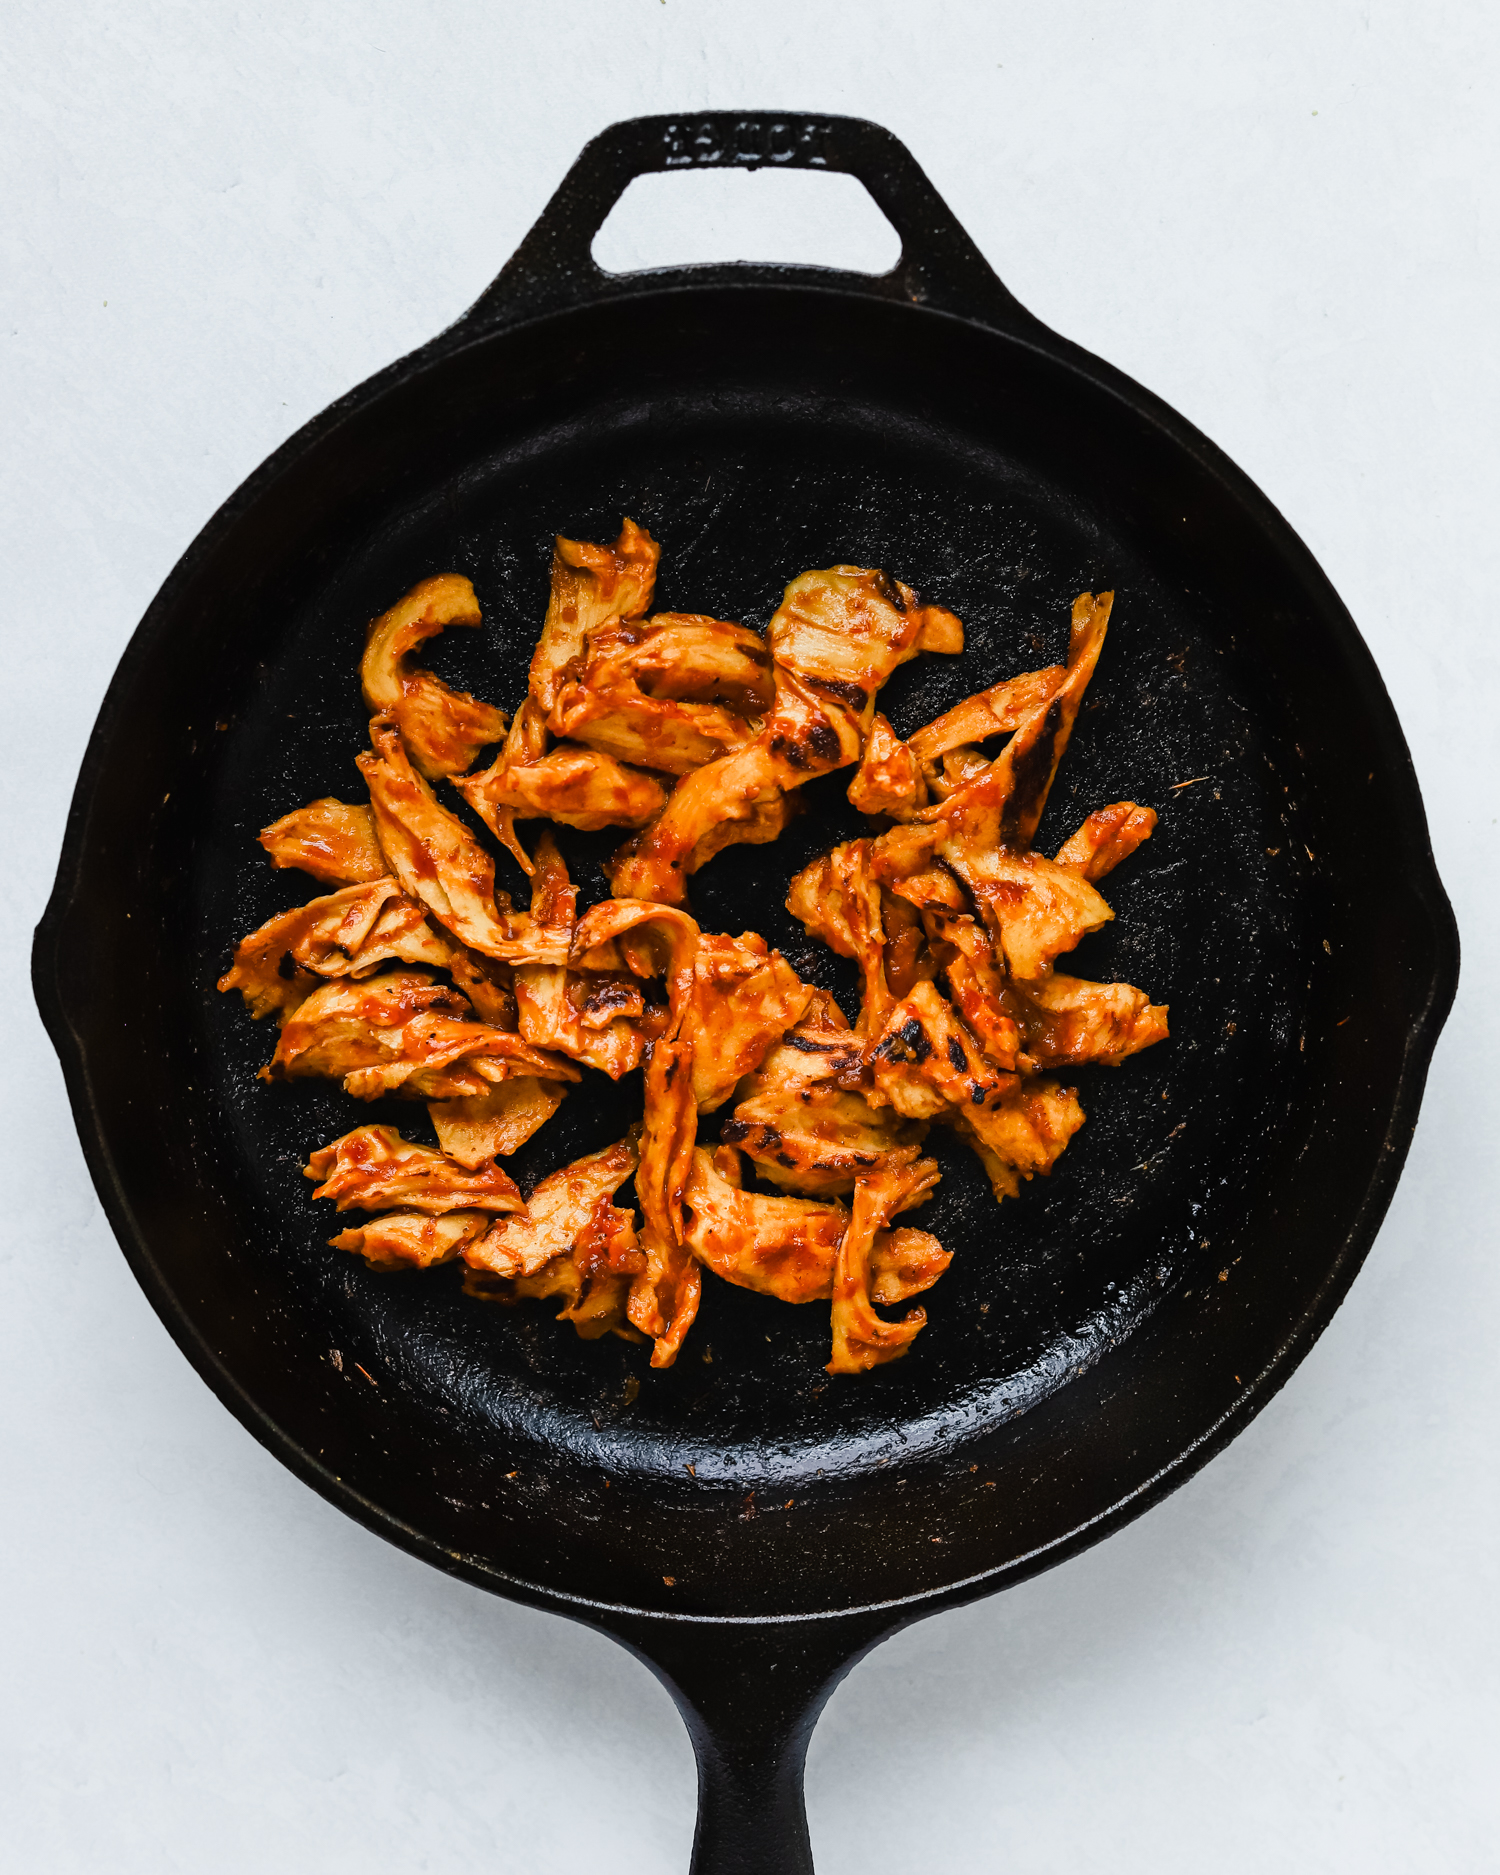 Seitan chicken shreds covered with BBQ sauce in a cast iron pan.